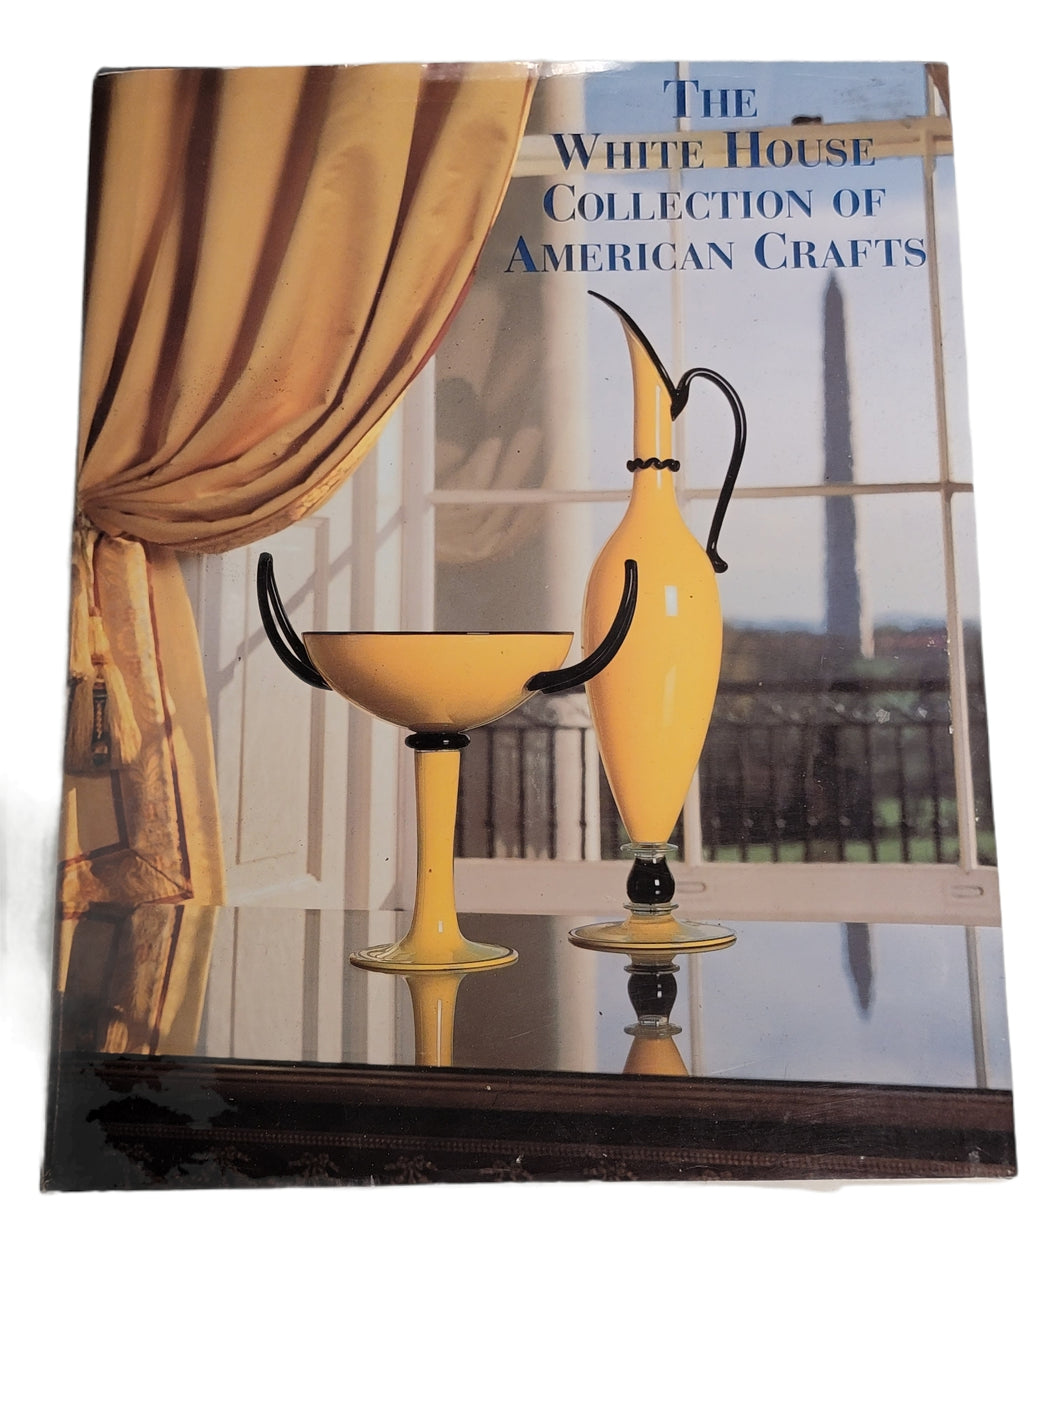 The Whitehouse Collection of American Crafts